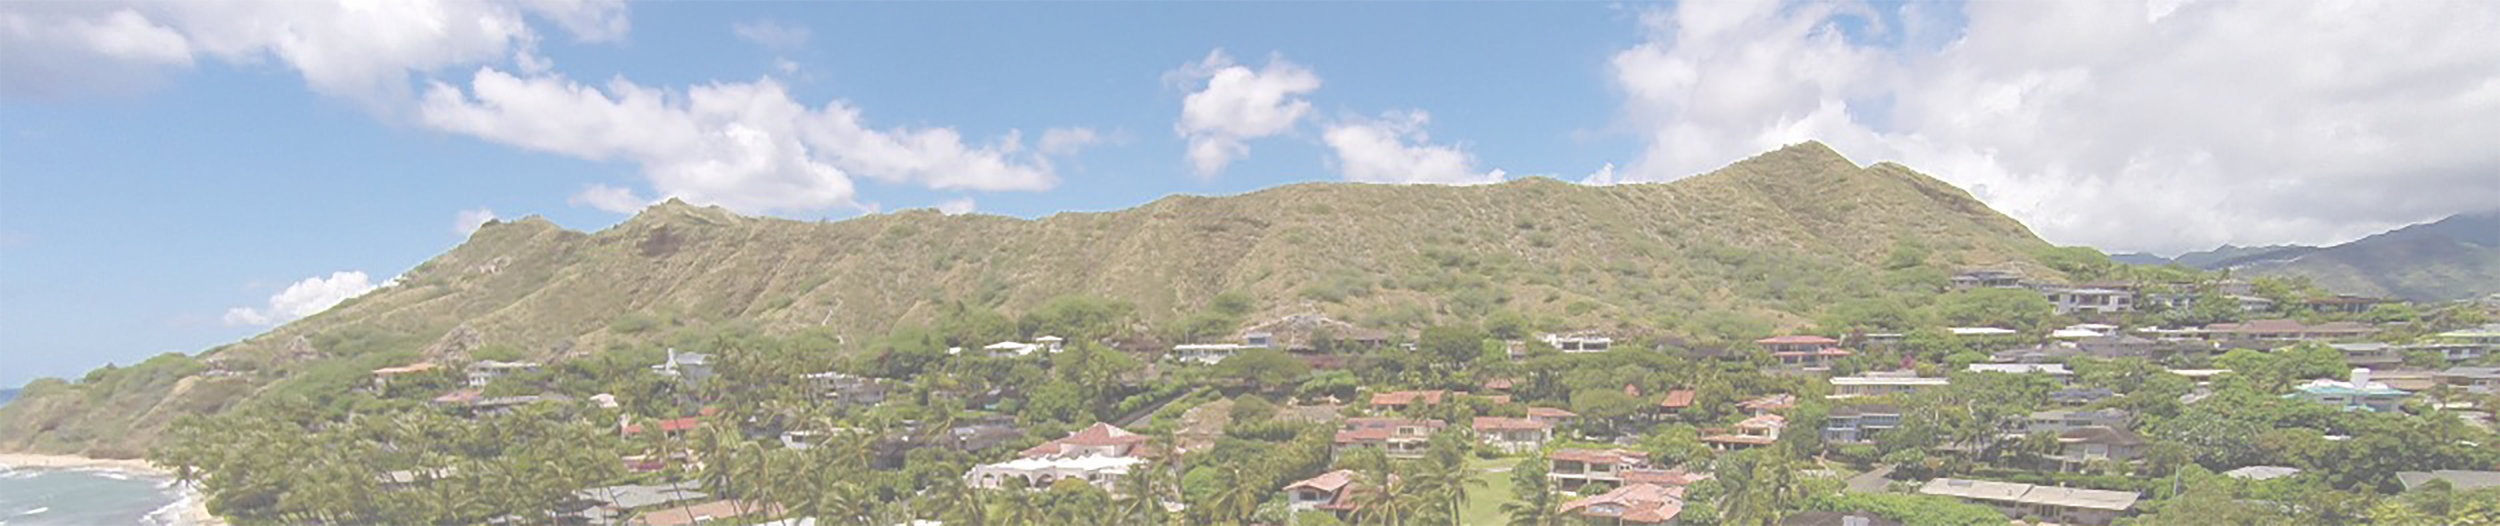 Kahala-Diamond-Head-View-Oahu.jpg